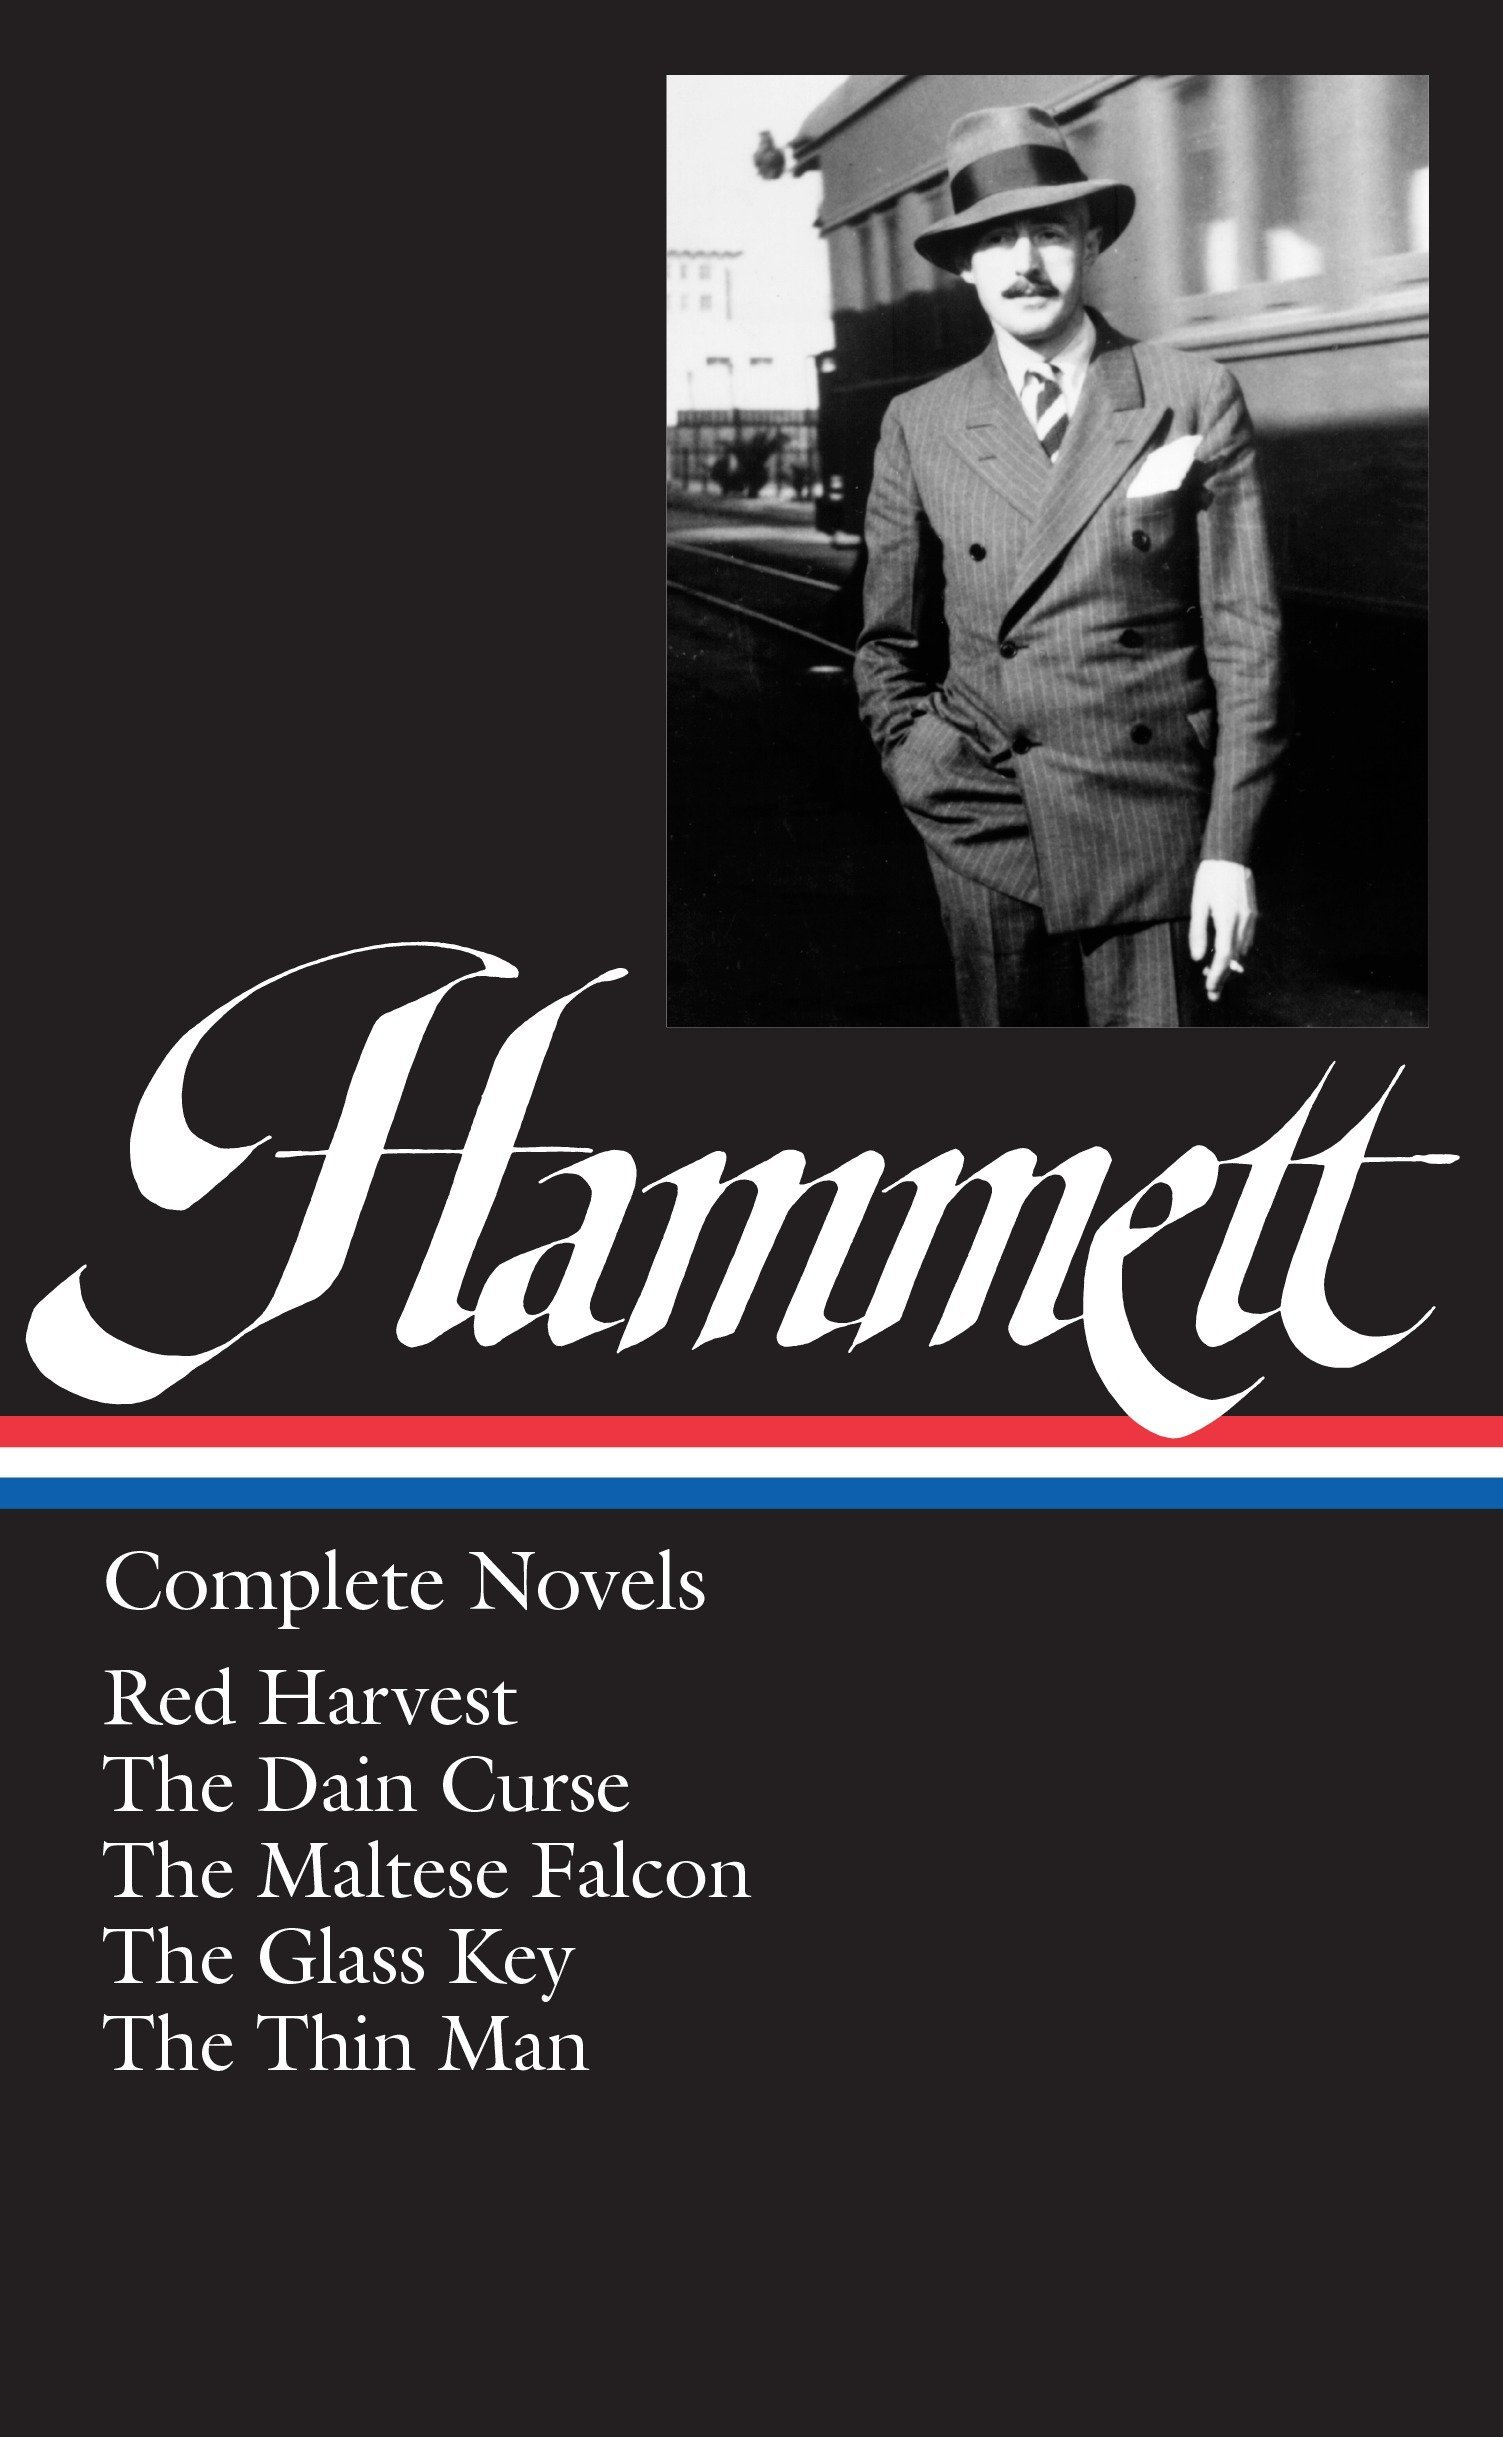 Dashiell Hammett: Complete Novels (LOA #110): Red Harvest / The Dain Curse / The Maltese Falcon / The Glass Key / The Thin Man (Library of America Dashiell Hammett Edition, Band 1)